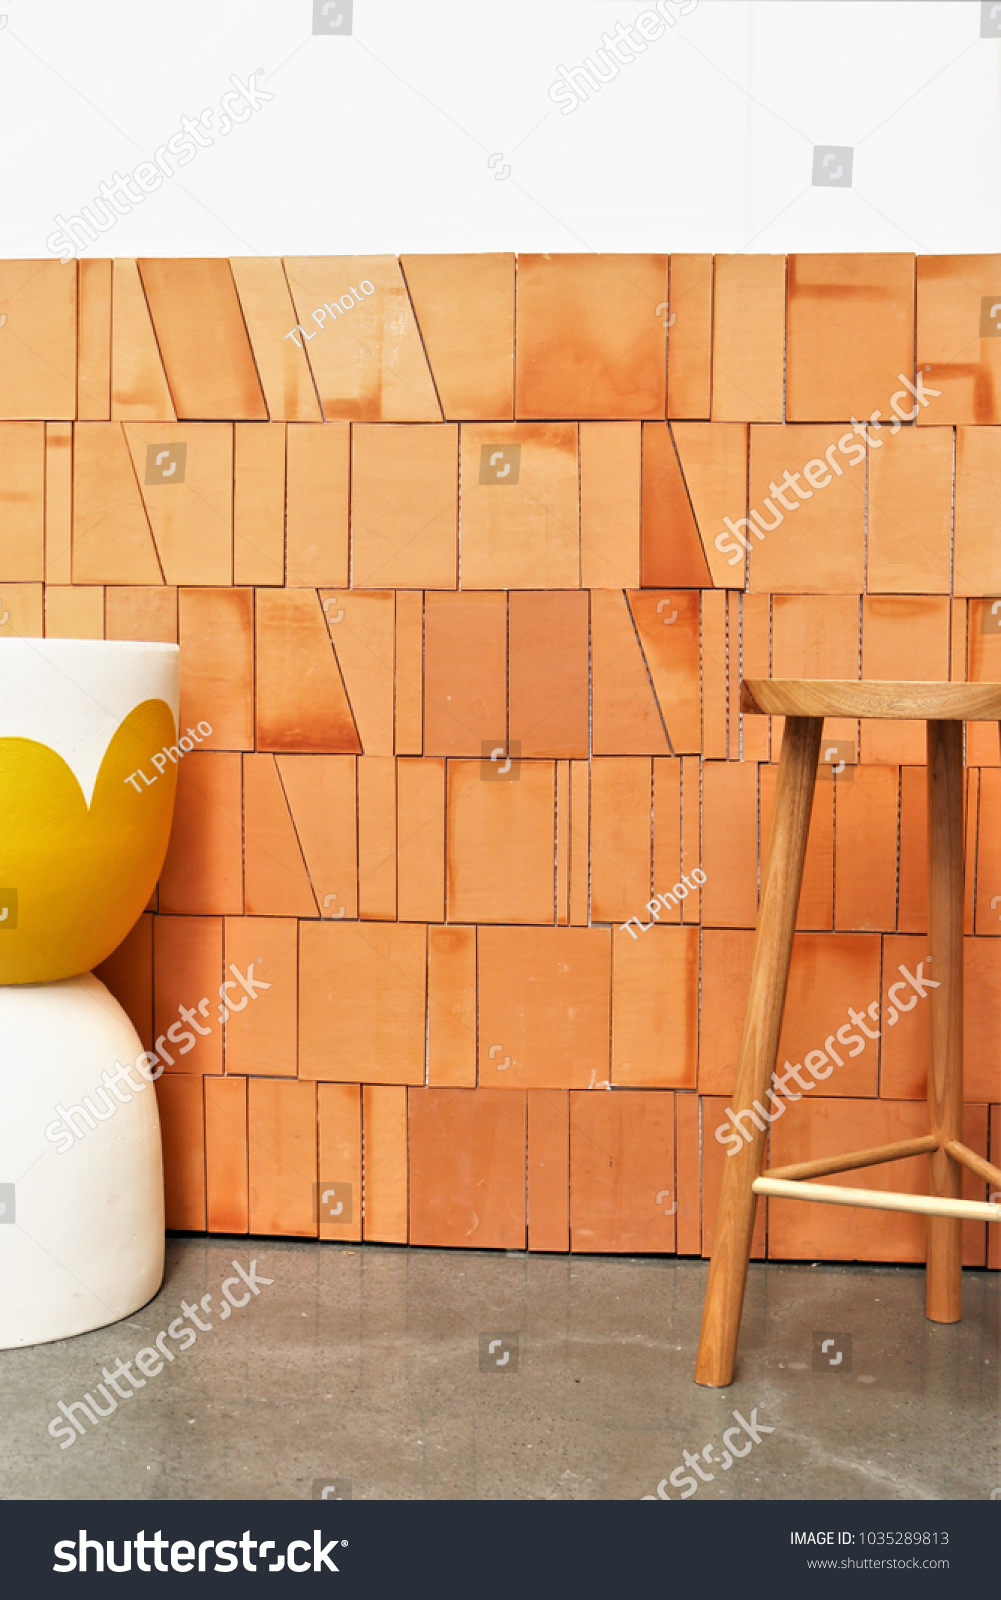 Terracotta tile wall background timber stool stock photo 1035289813 terracotta tile wall background with timber stool and ceramic pot dailygadgetfo Image collections